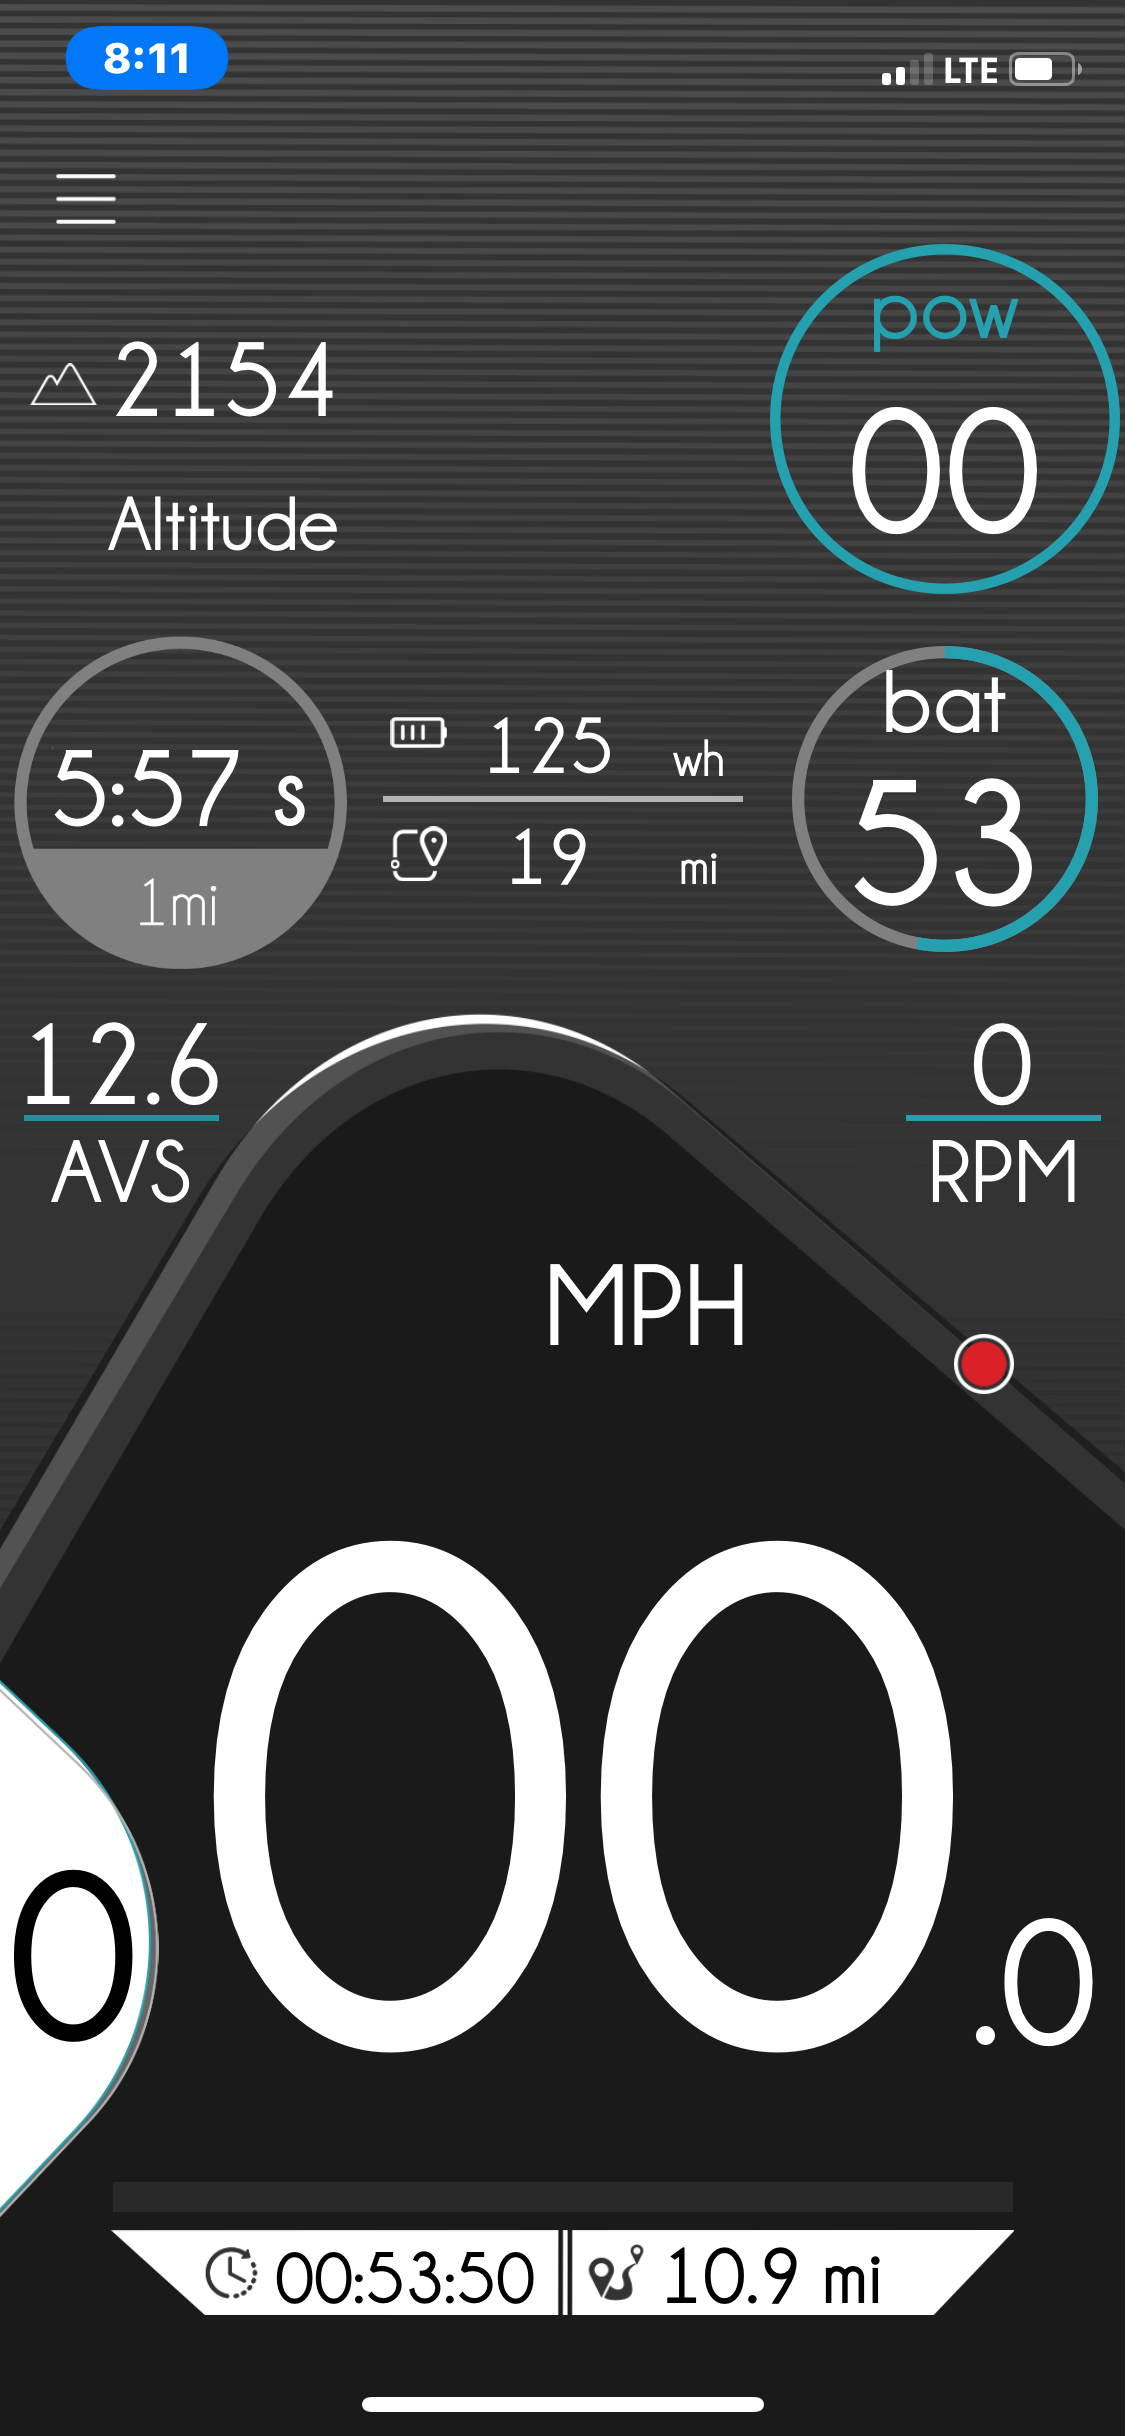 eBikemotion App Screen showing data when the junction was reached